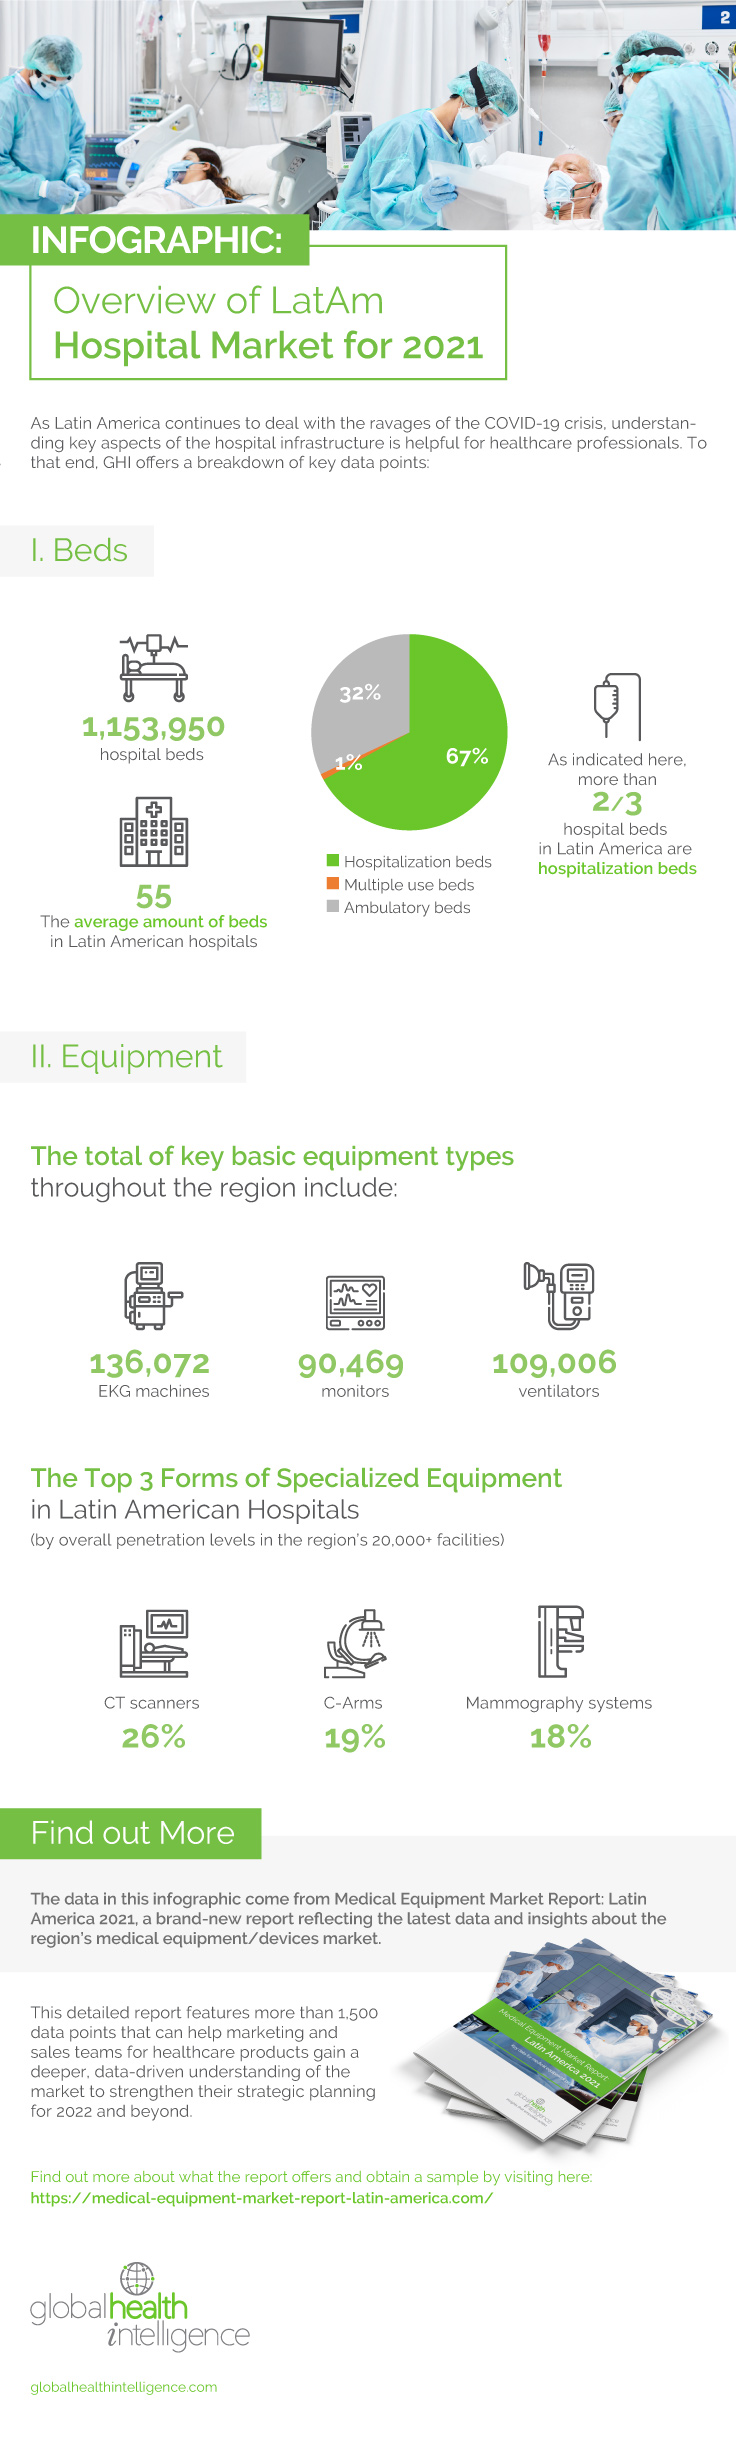 Infographic: Overview of LatAm Hospital Market for 2021